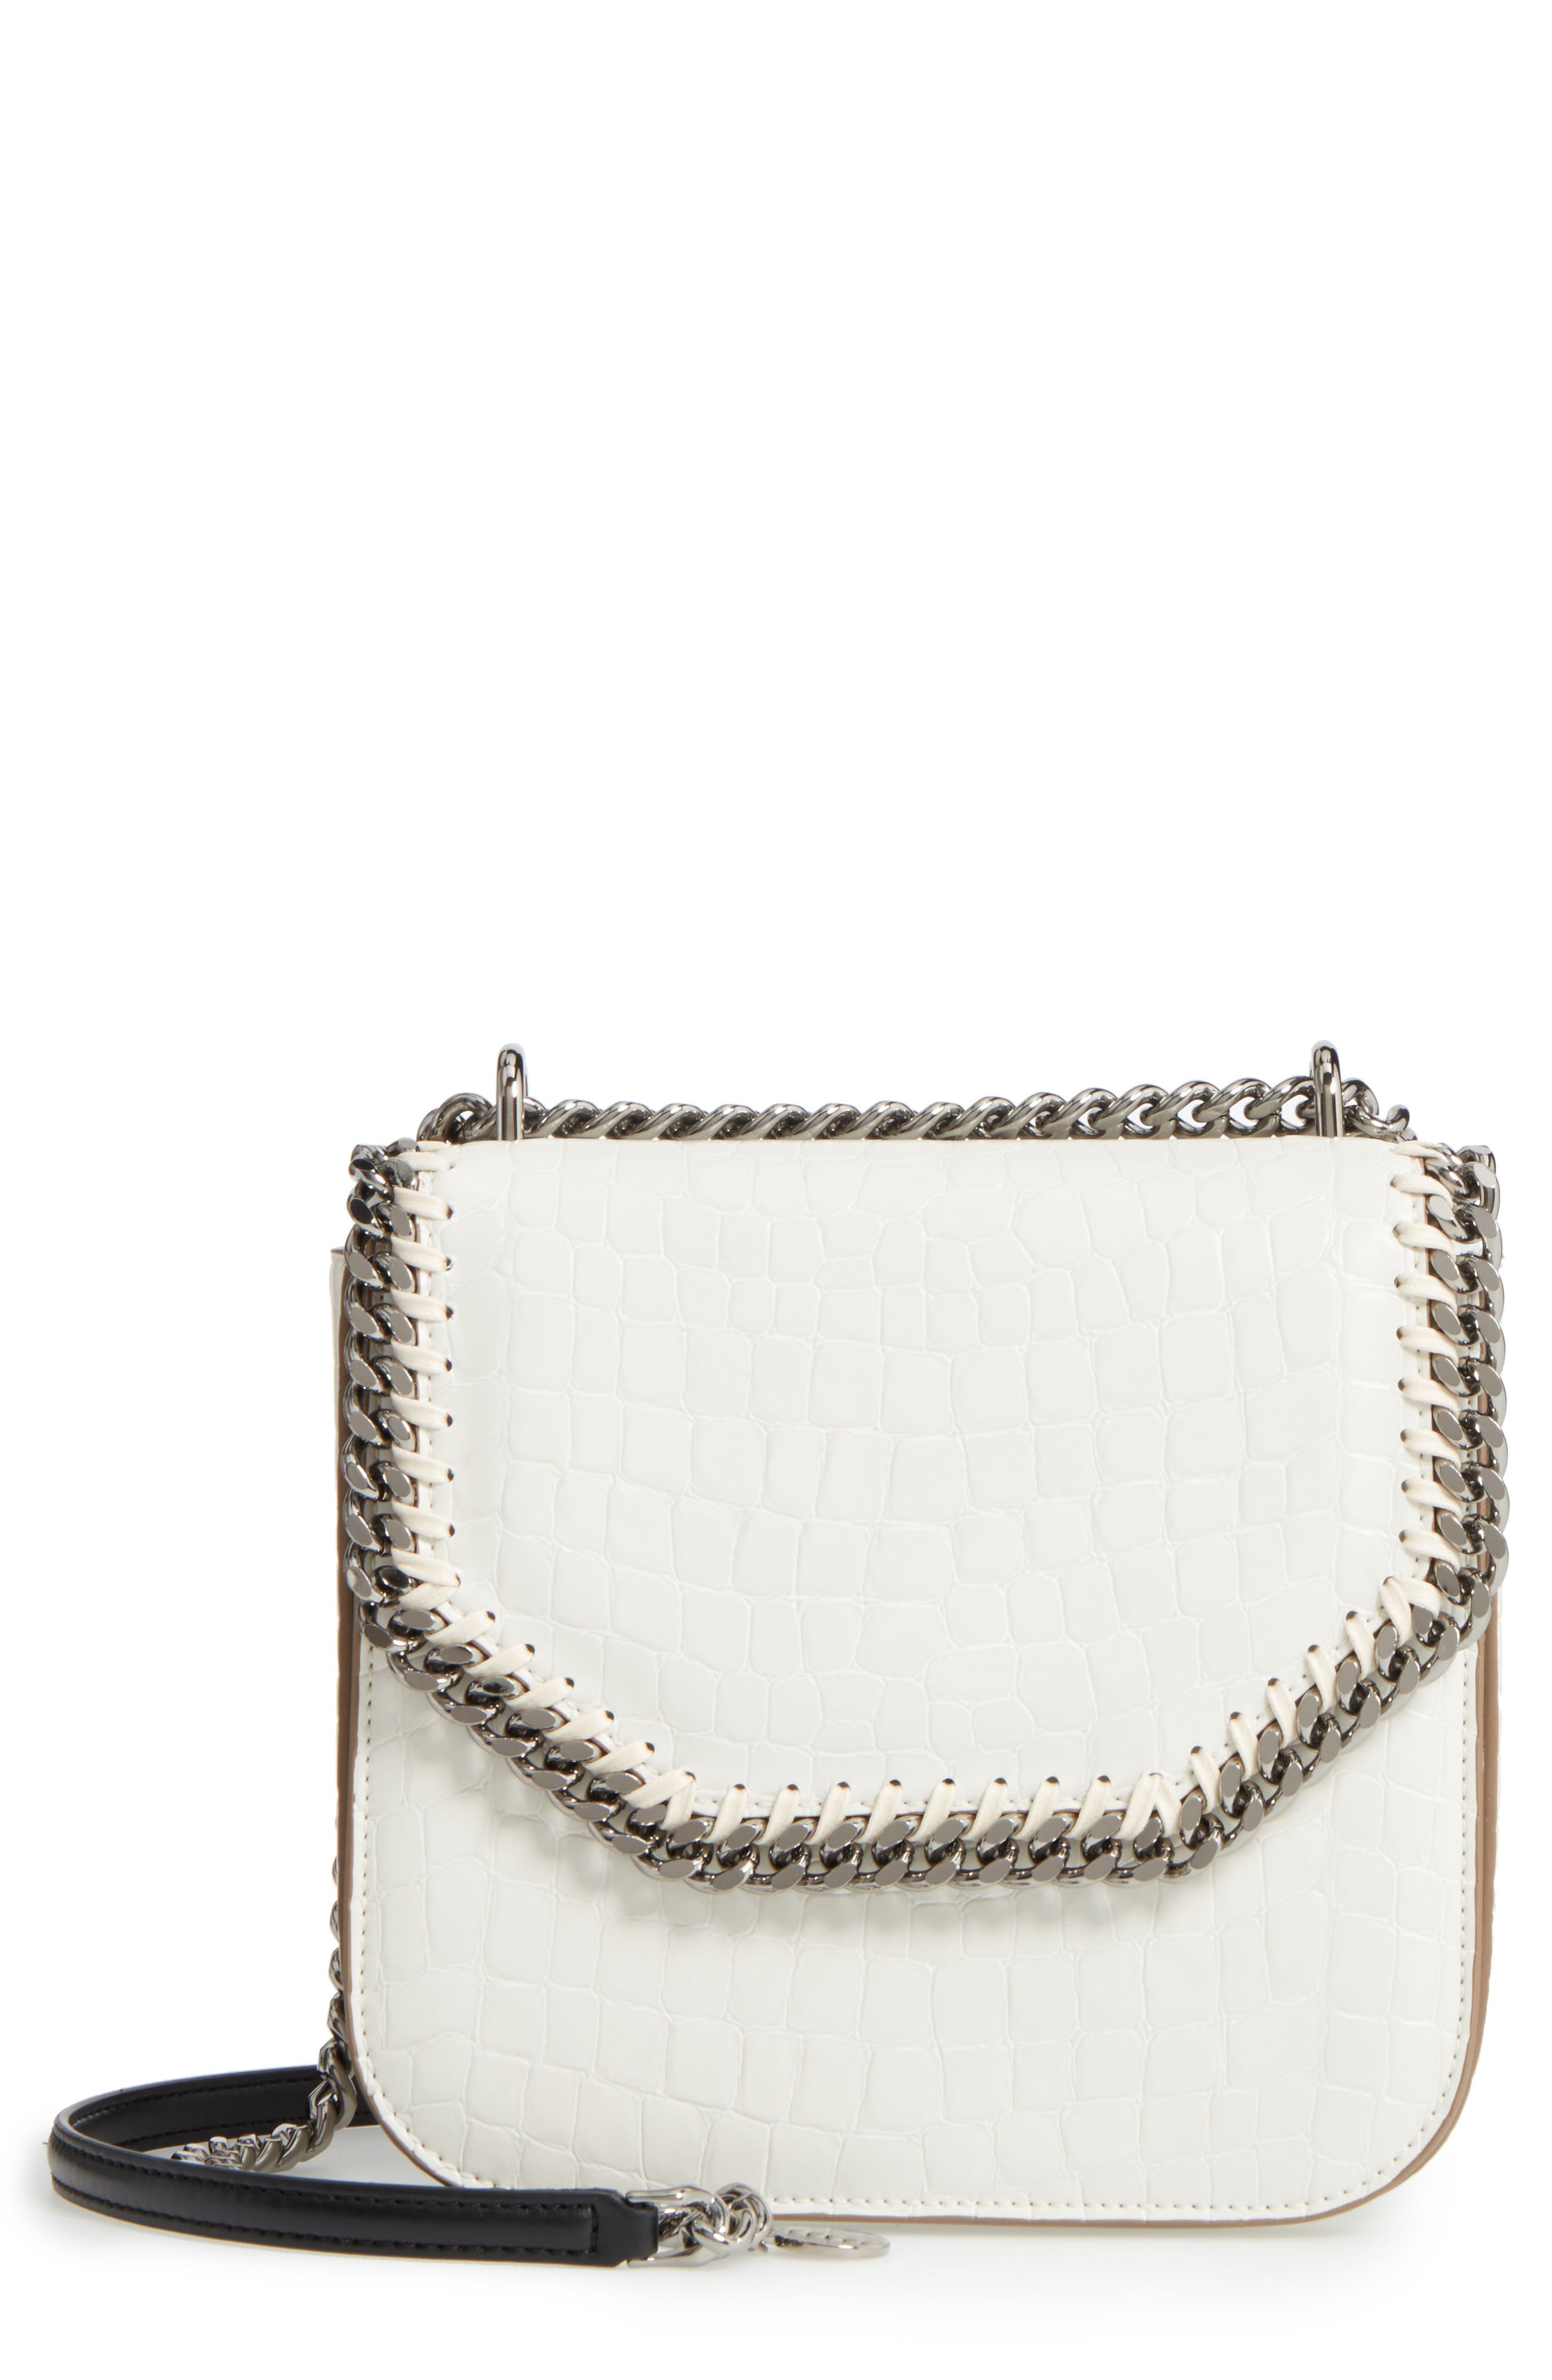 Main Image - Stella McCartney Medium Falabella Box Croc-Embossed Faux Leather Shoulder Bag